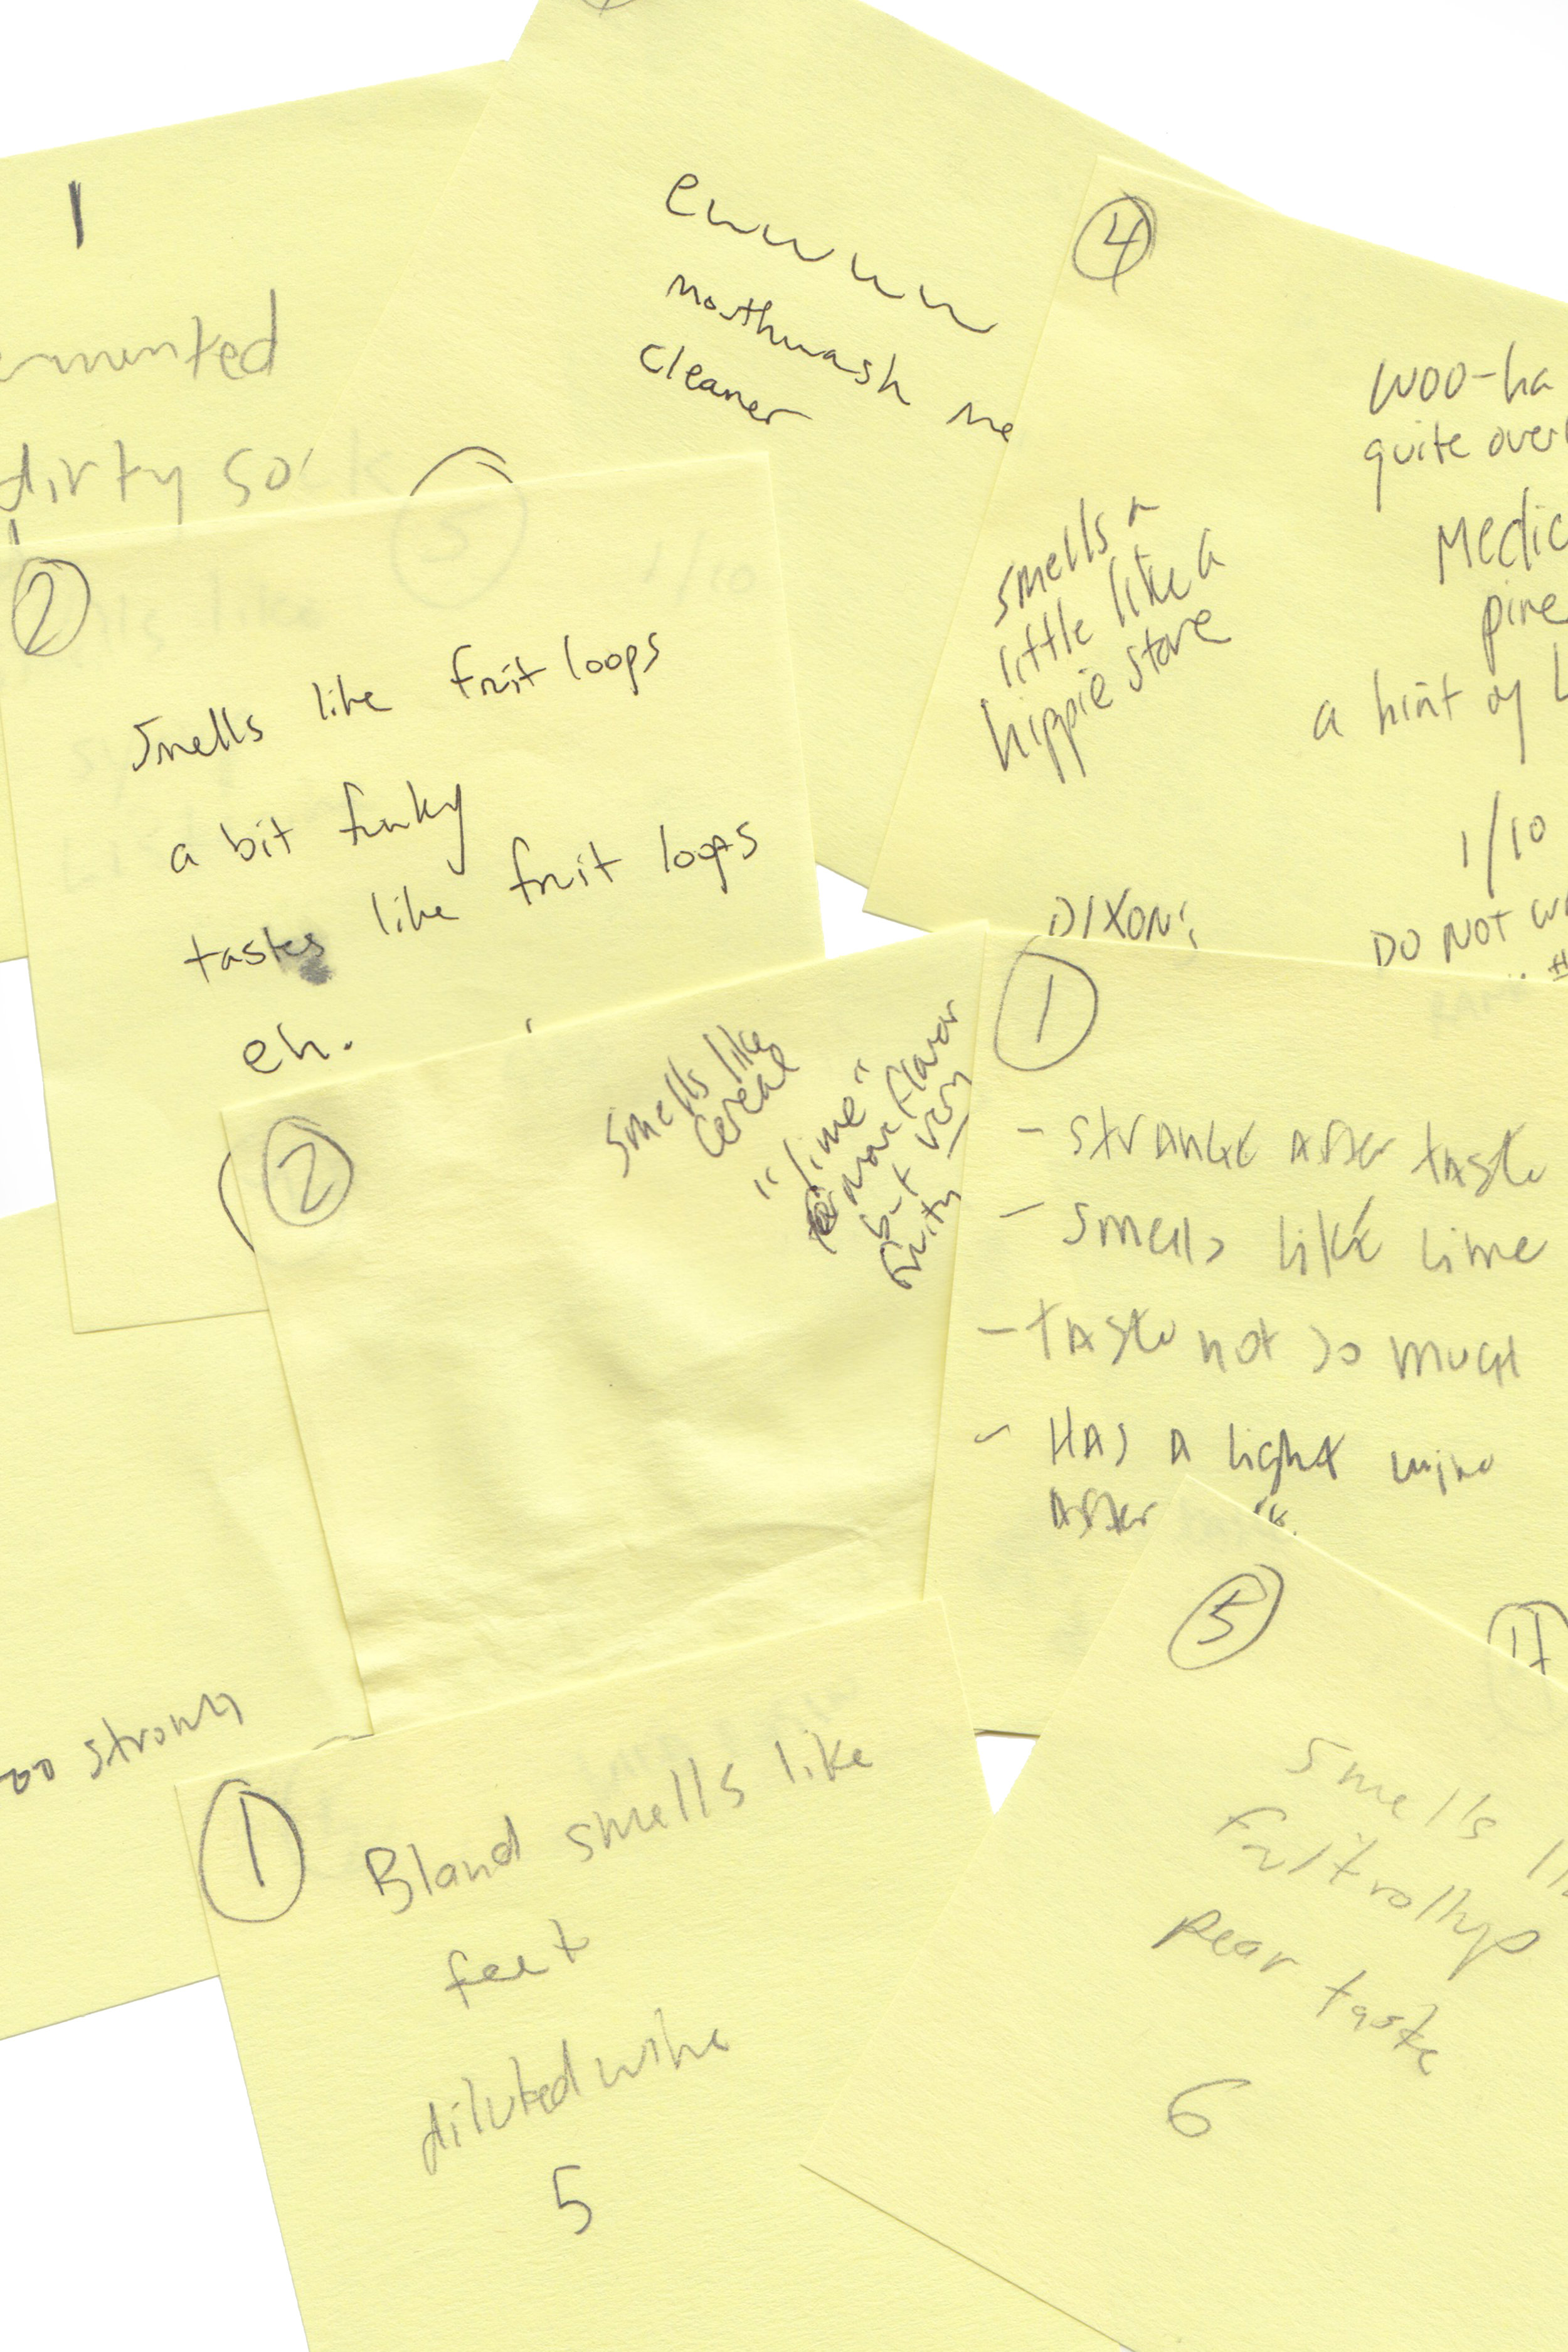 Our funny notes!